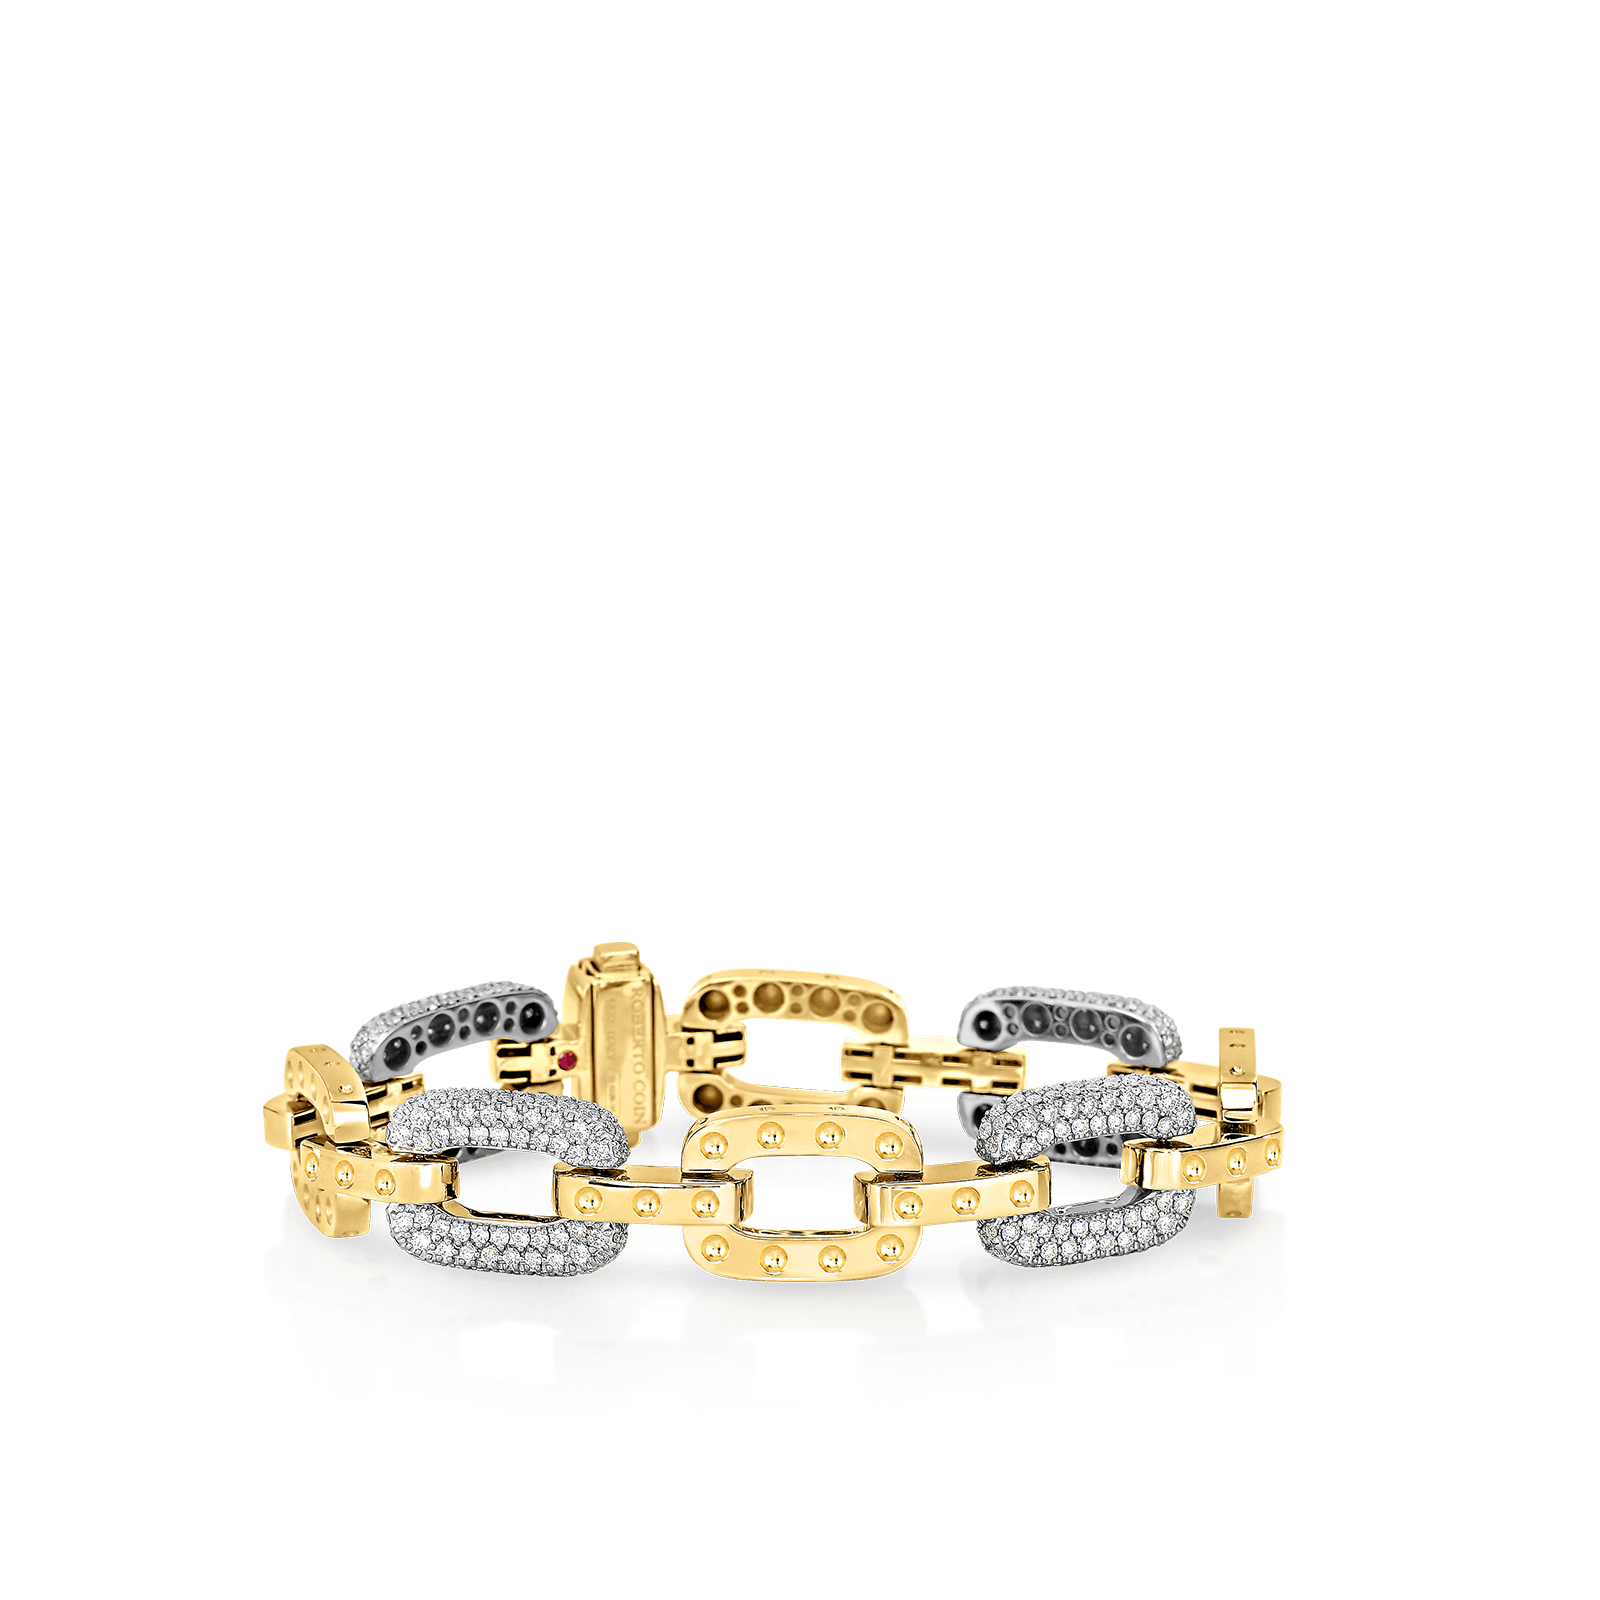 Roberto-Coin-Pois-Moi-18K-Yellow-Gold-and-18K-White-Gold-Braclet-with-5-Diamond-Links-777871AJLBX0